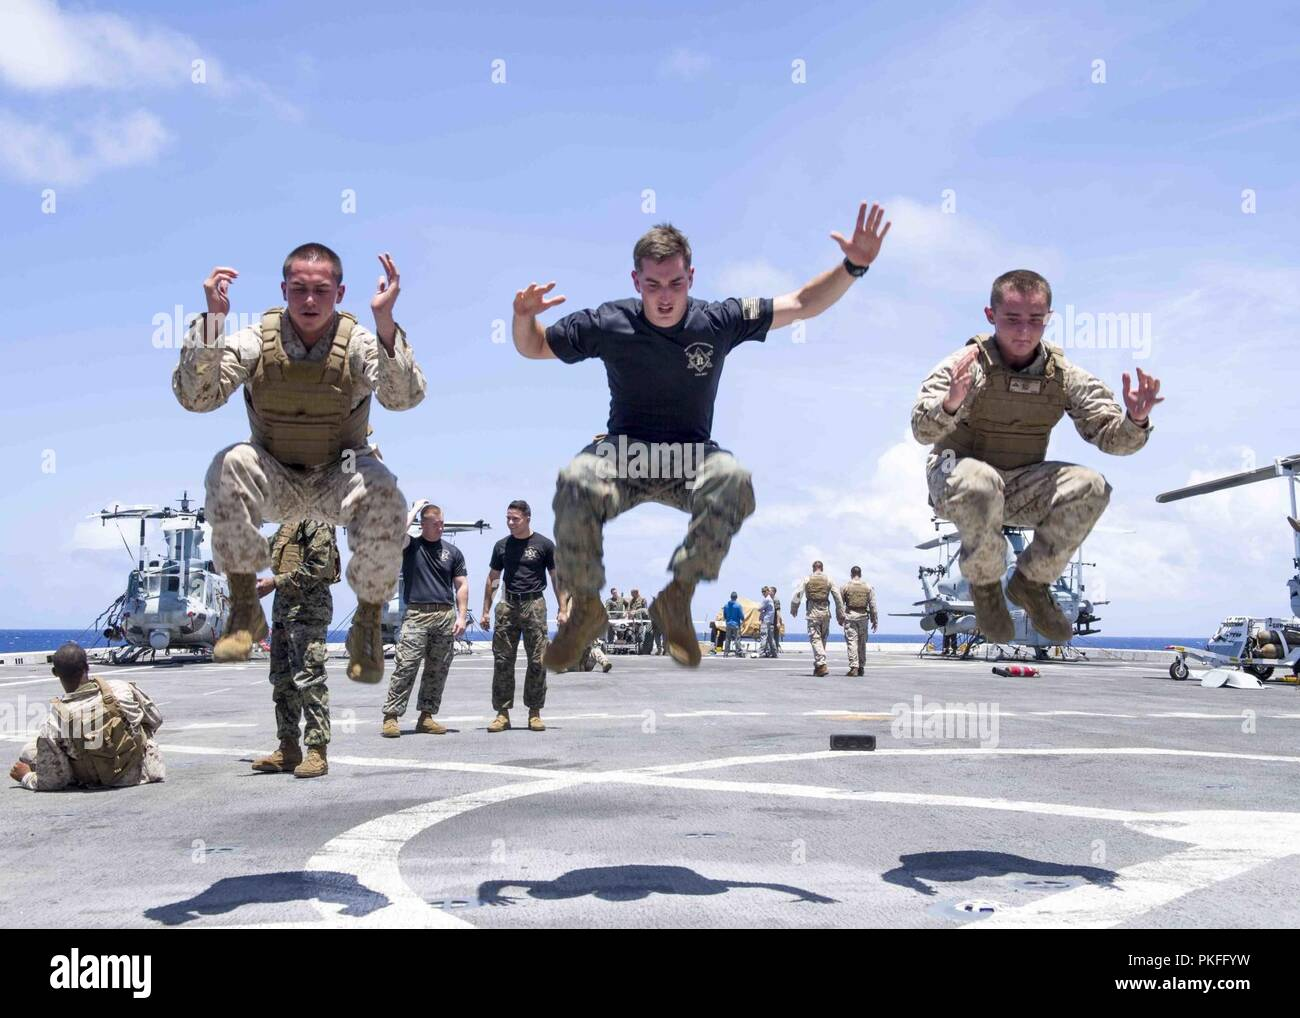 PACIFIC OCEAN (August 6, 2018) Marines assigned to 13th Marine Expeditionary Unit (MEU) conduct physical training on the flight deck of San Antonio-class amphibious transport dock USS Anchorage (LPD 23) during a regularly scheduled deployment of the Essex Amphibious Ready Group (ARG) and 13th MEU. The Essex ARG/MEU team is a strong and flexible force equipped and scalable to respond to any crisis ranging from humanitarian assistance and disaster relief to contingency operations. - Stock Image